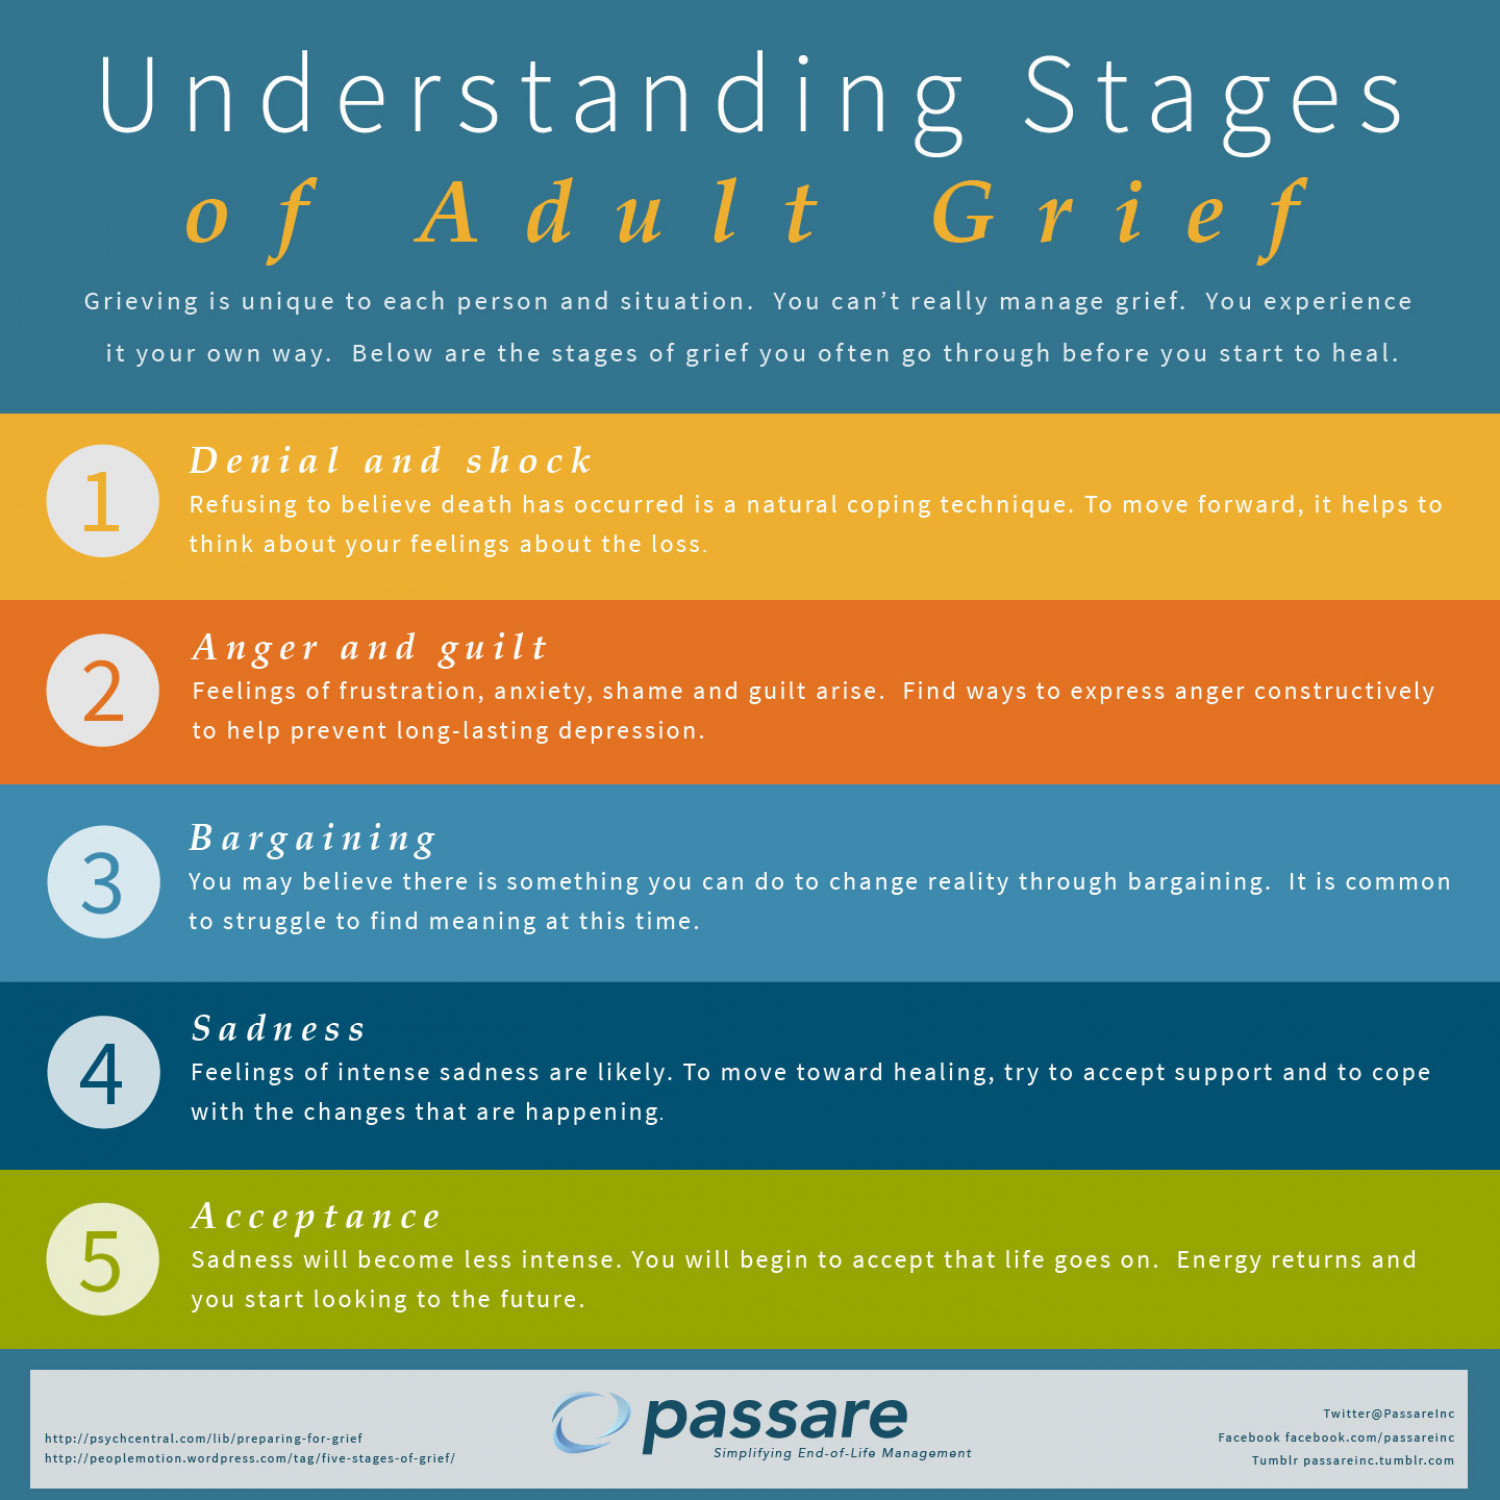 Stages Of Adult Grief